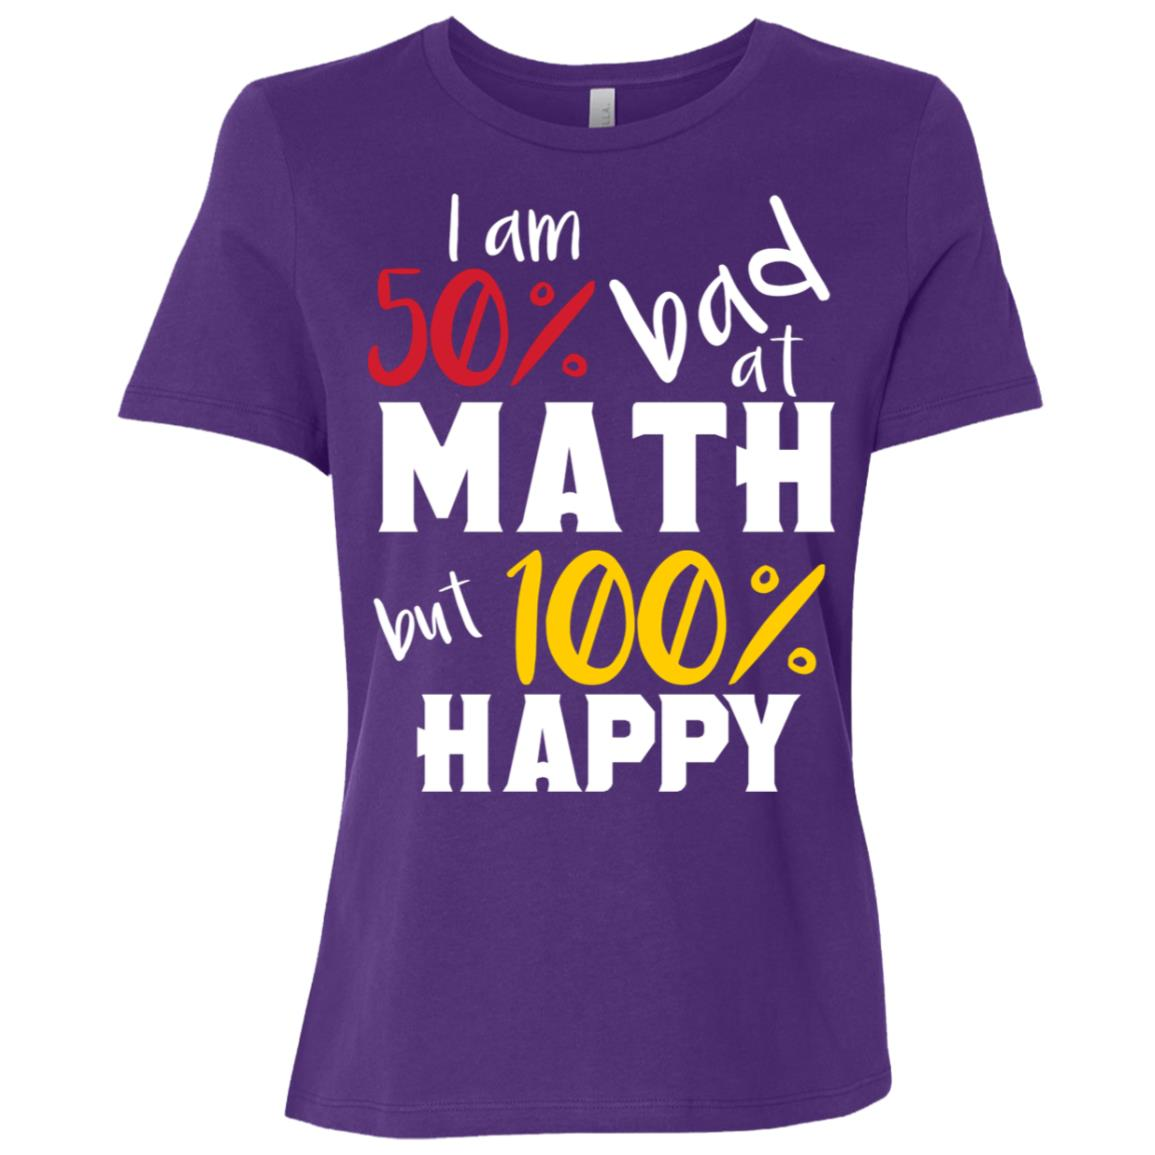 50% Bad At Math But 100% Happy – Funny Math Gift Women Short Sleeve T-Shirt